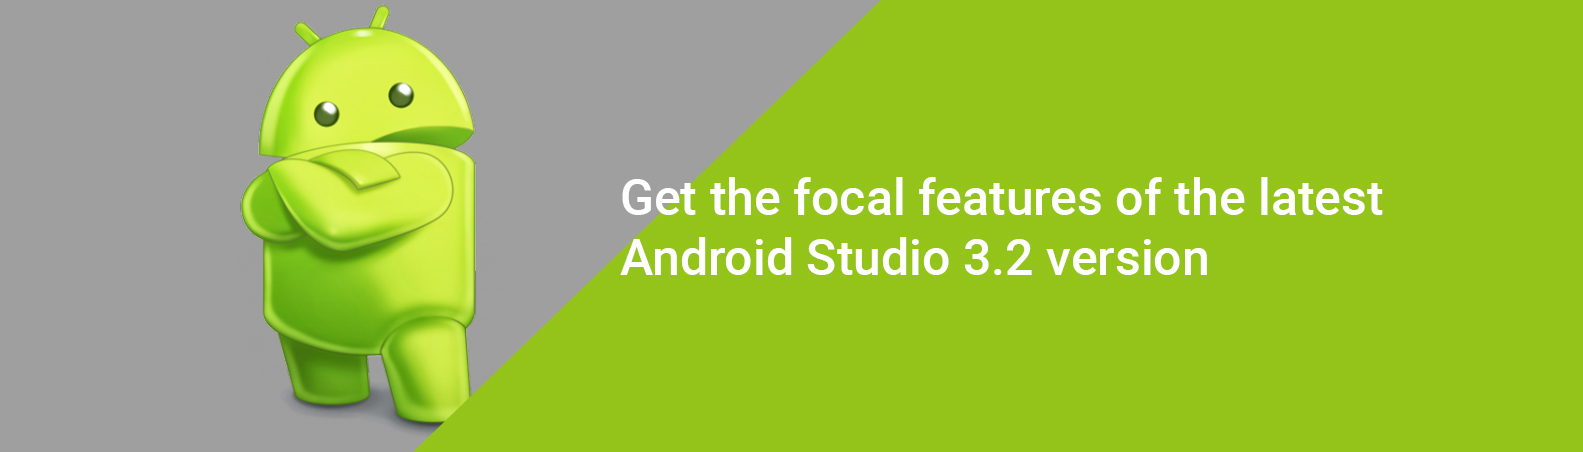 Get the focal features of the latest Android Studio 3.2 version